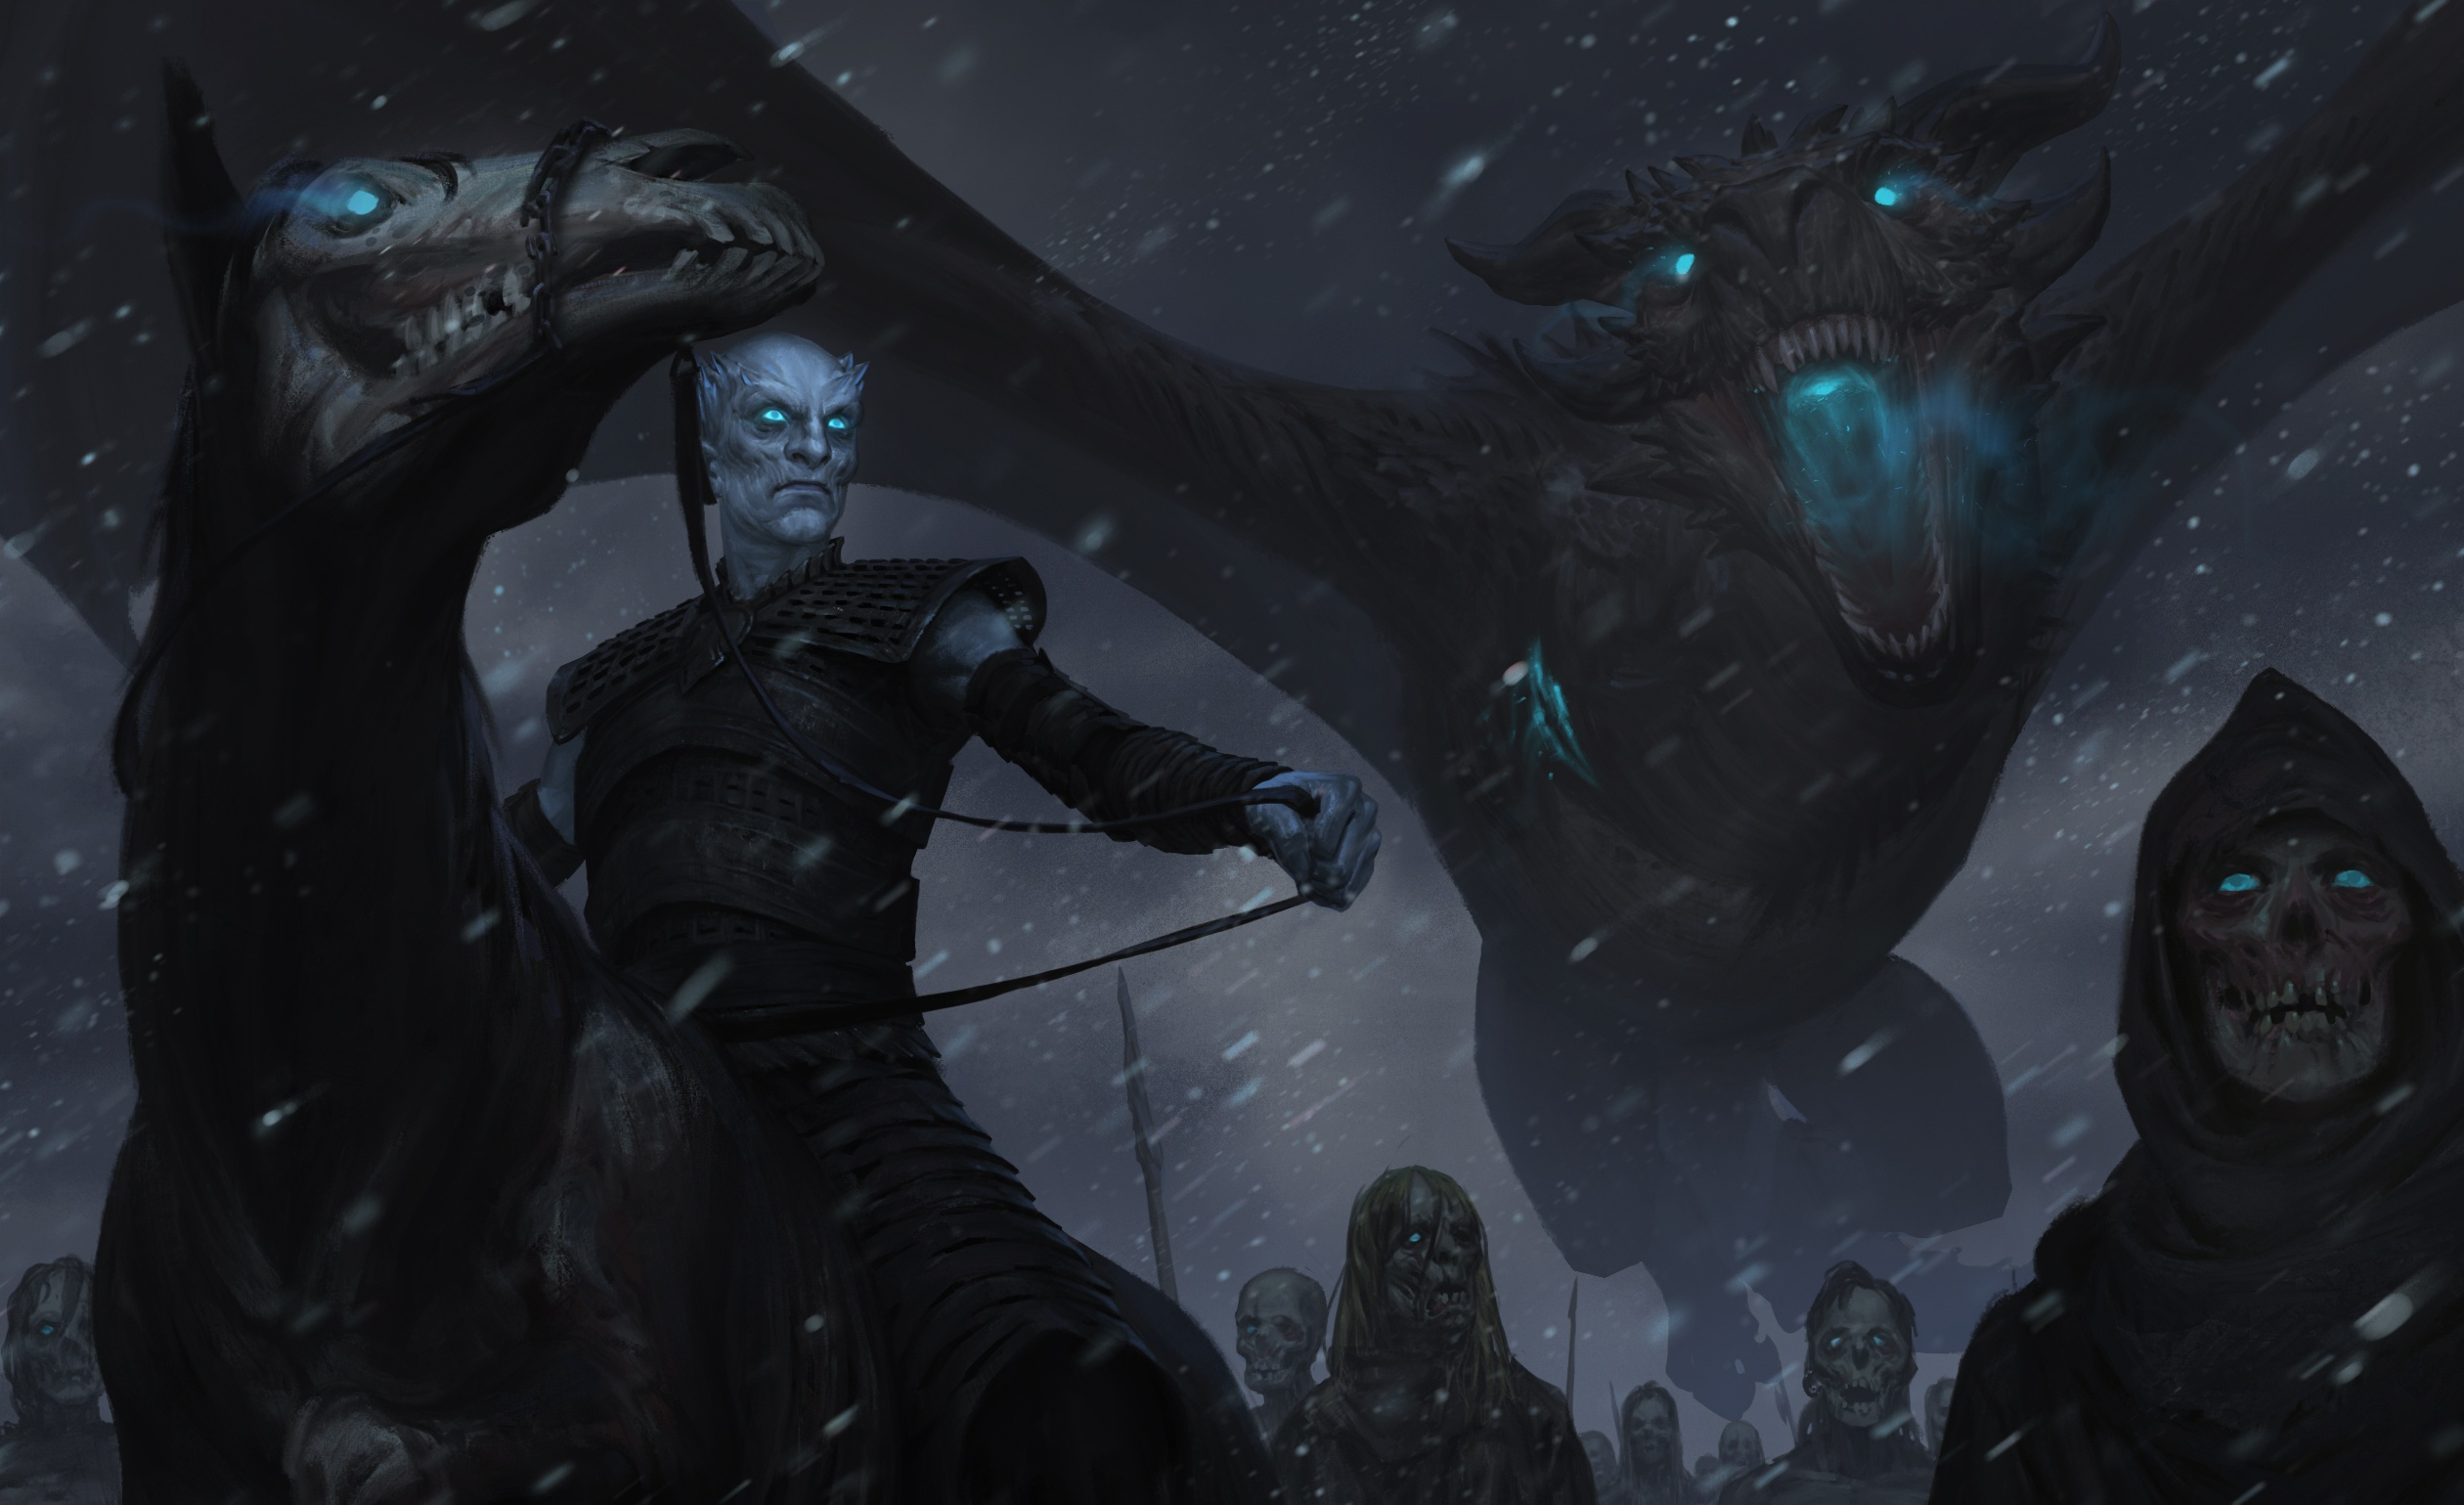 General 2520x1539 Game of Thrones tv series fantasy art artwork dragon creature George R. R. Martin